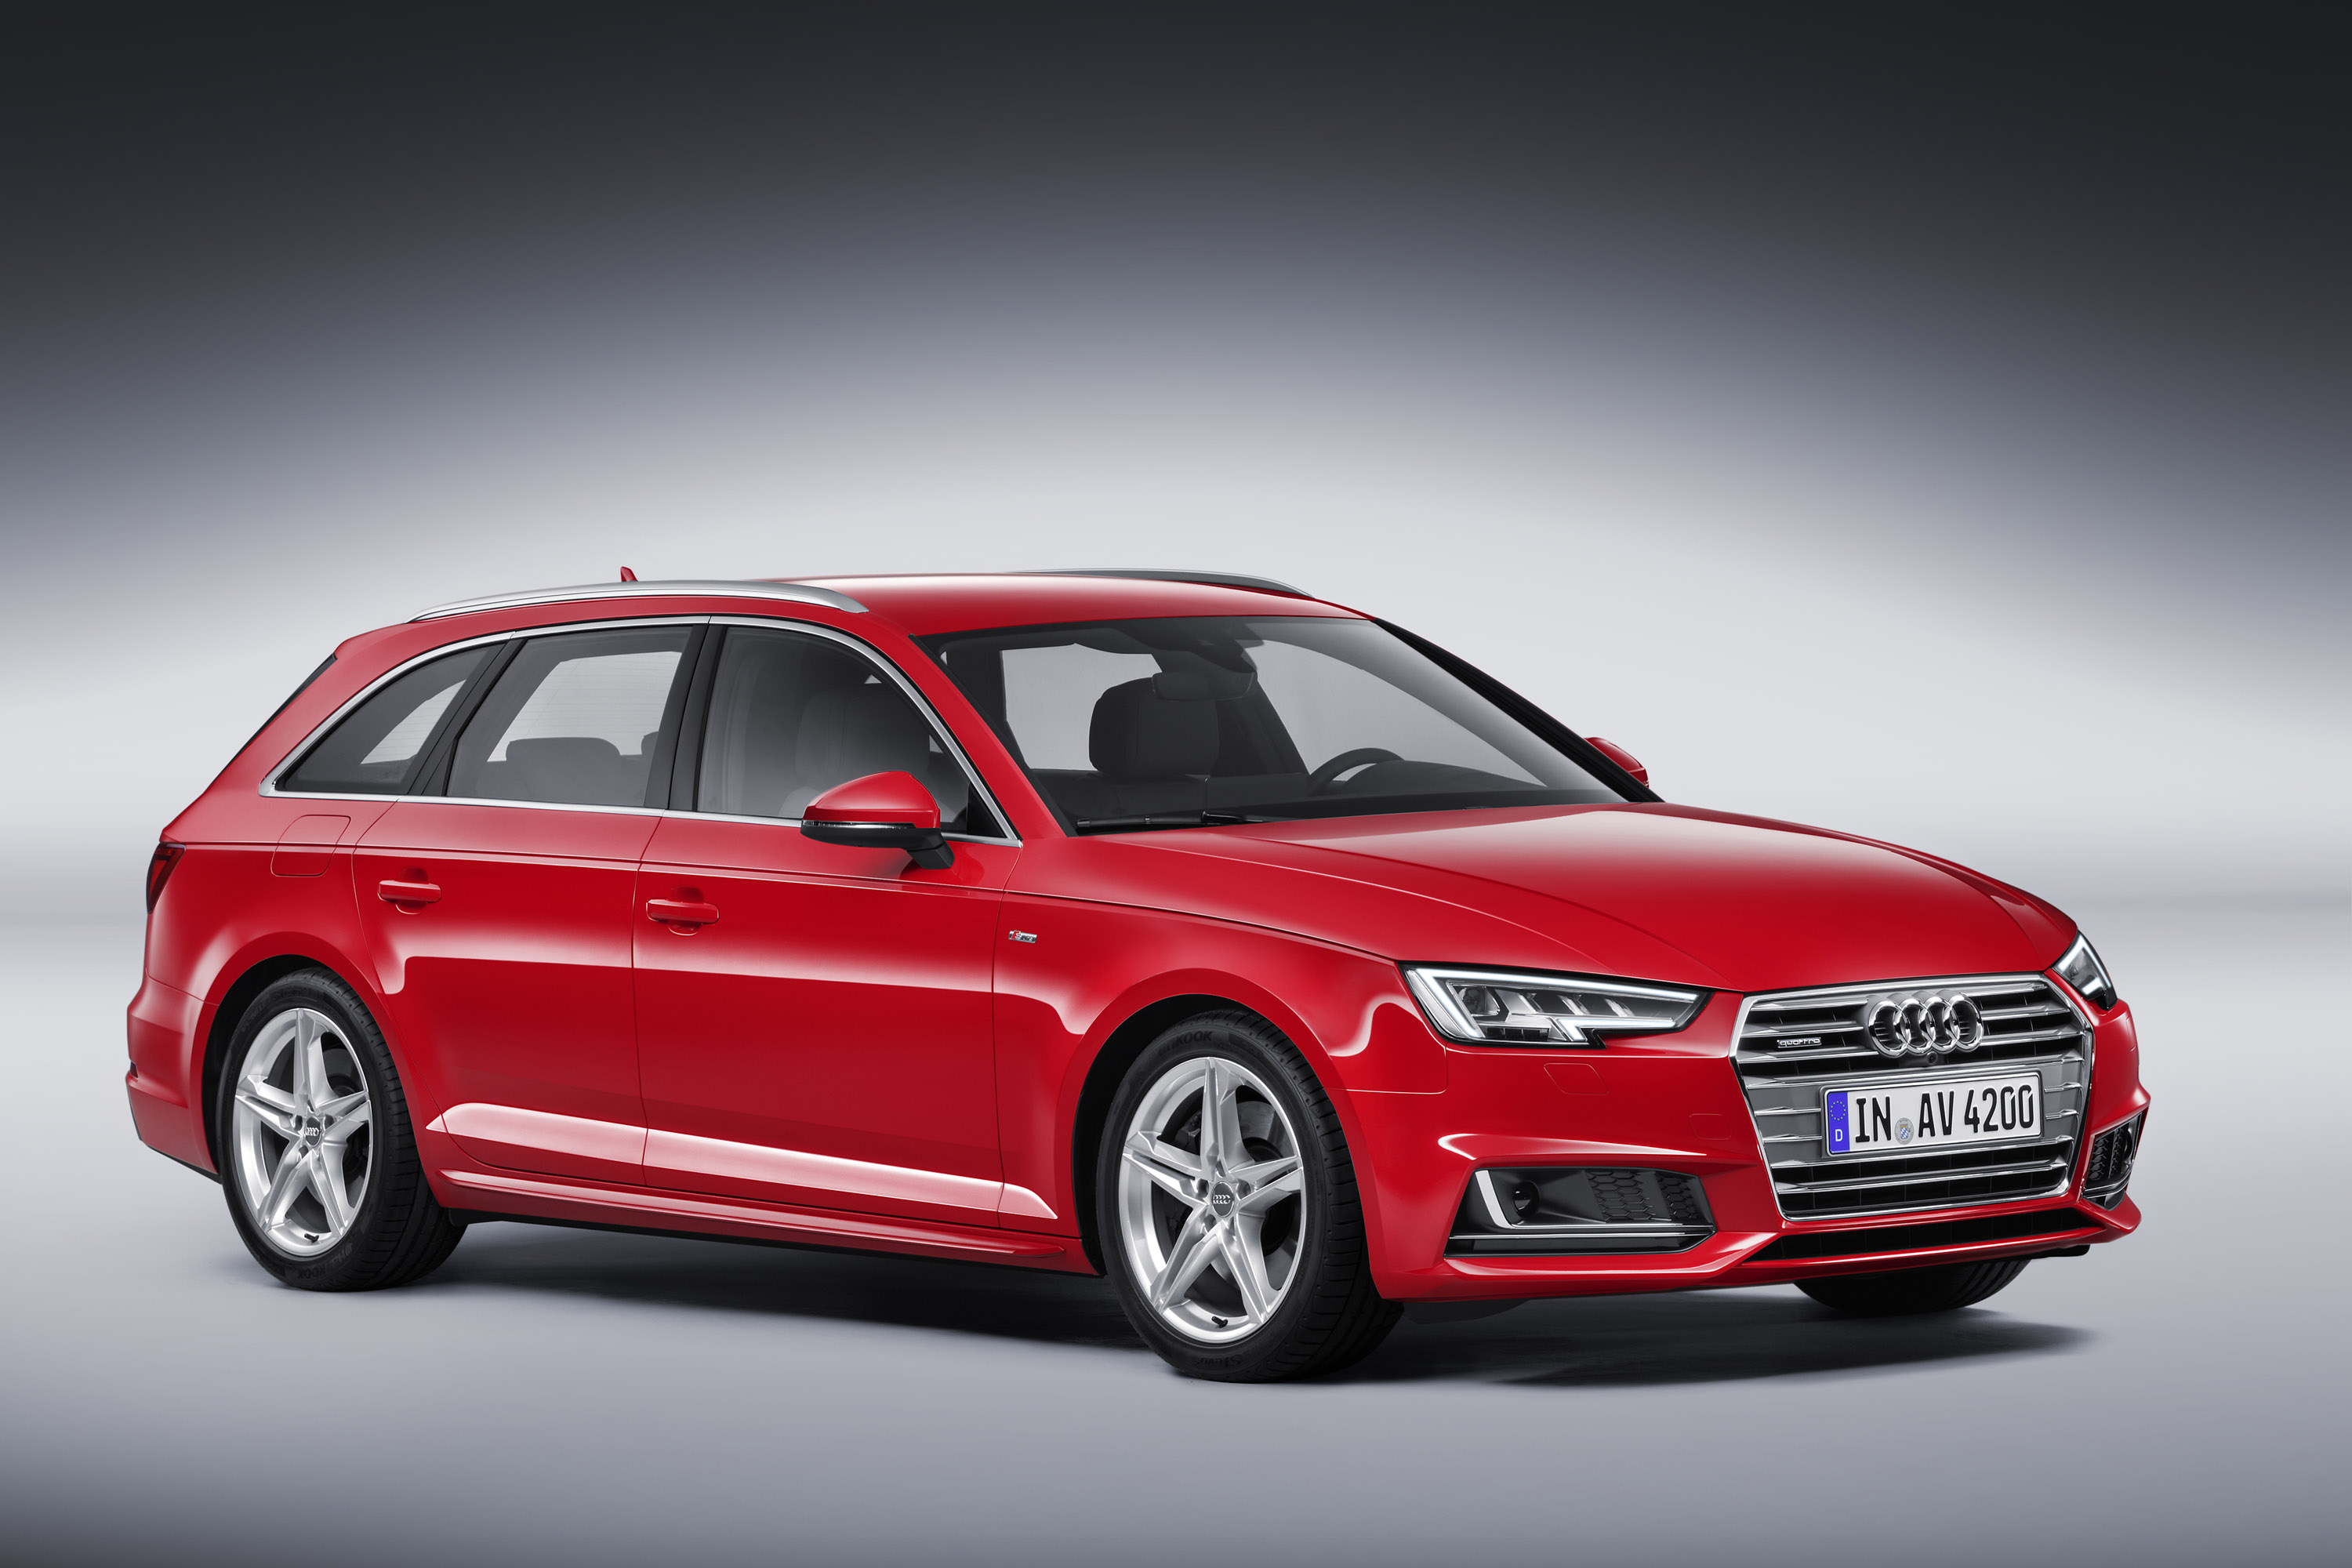 2016 audi a4 avant hd pictures. Black Bedroom Furniture Sets. Home Design Ideas